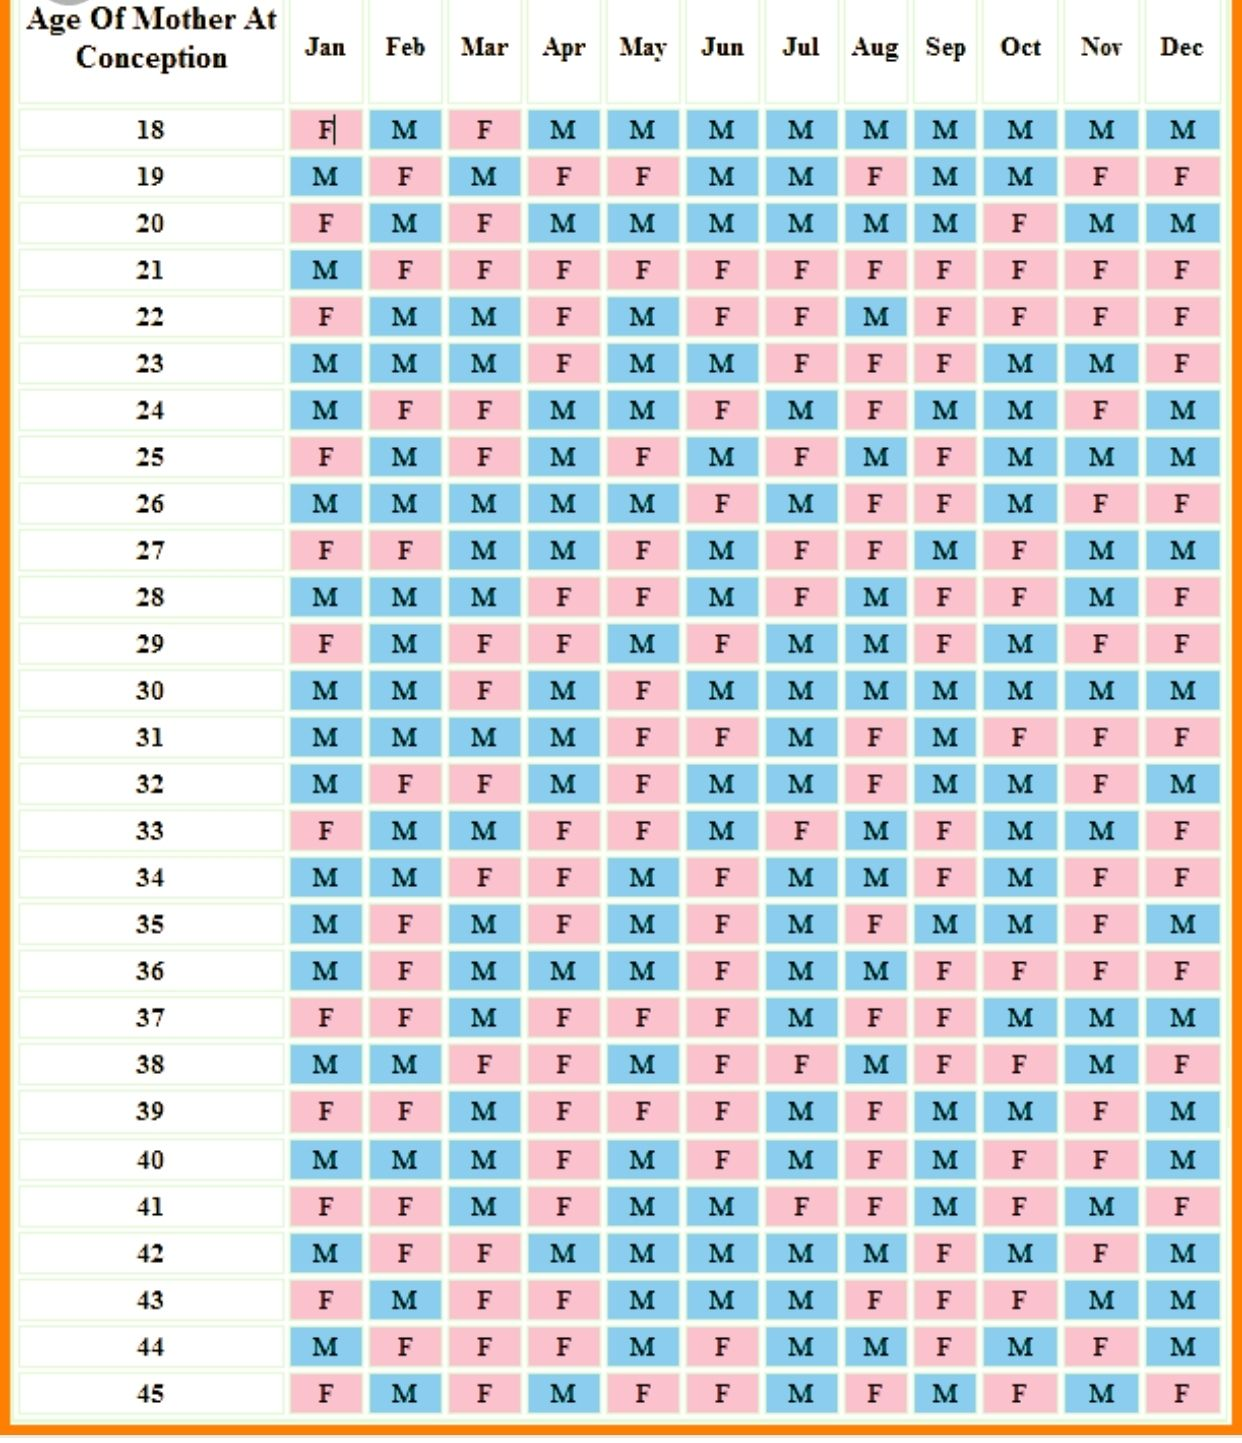 Chinese Calendar January 2019 Babies Forums What To Expect Get Chinese Gender Calendar Chinese Calendar Gender Calendar